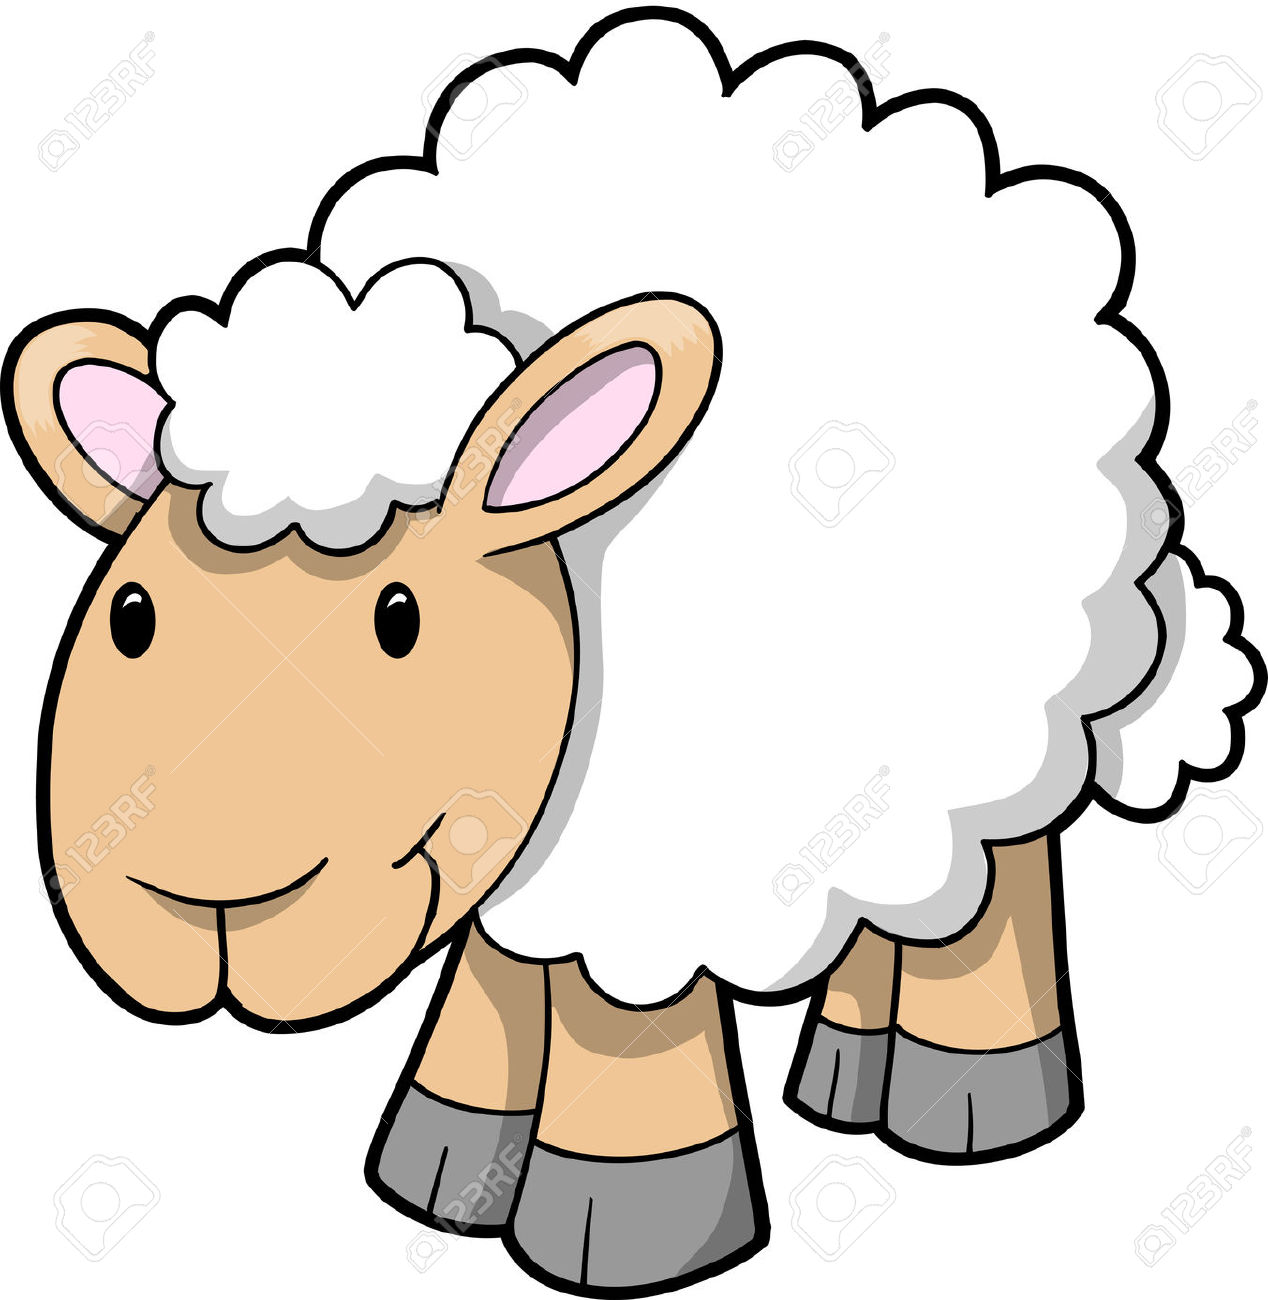 pin Sheep clipart cartoon #1 - PNG Sheep Cartoon